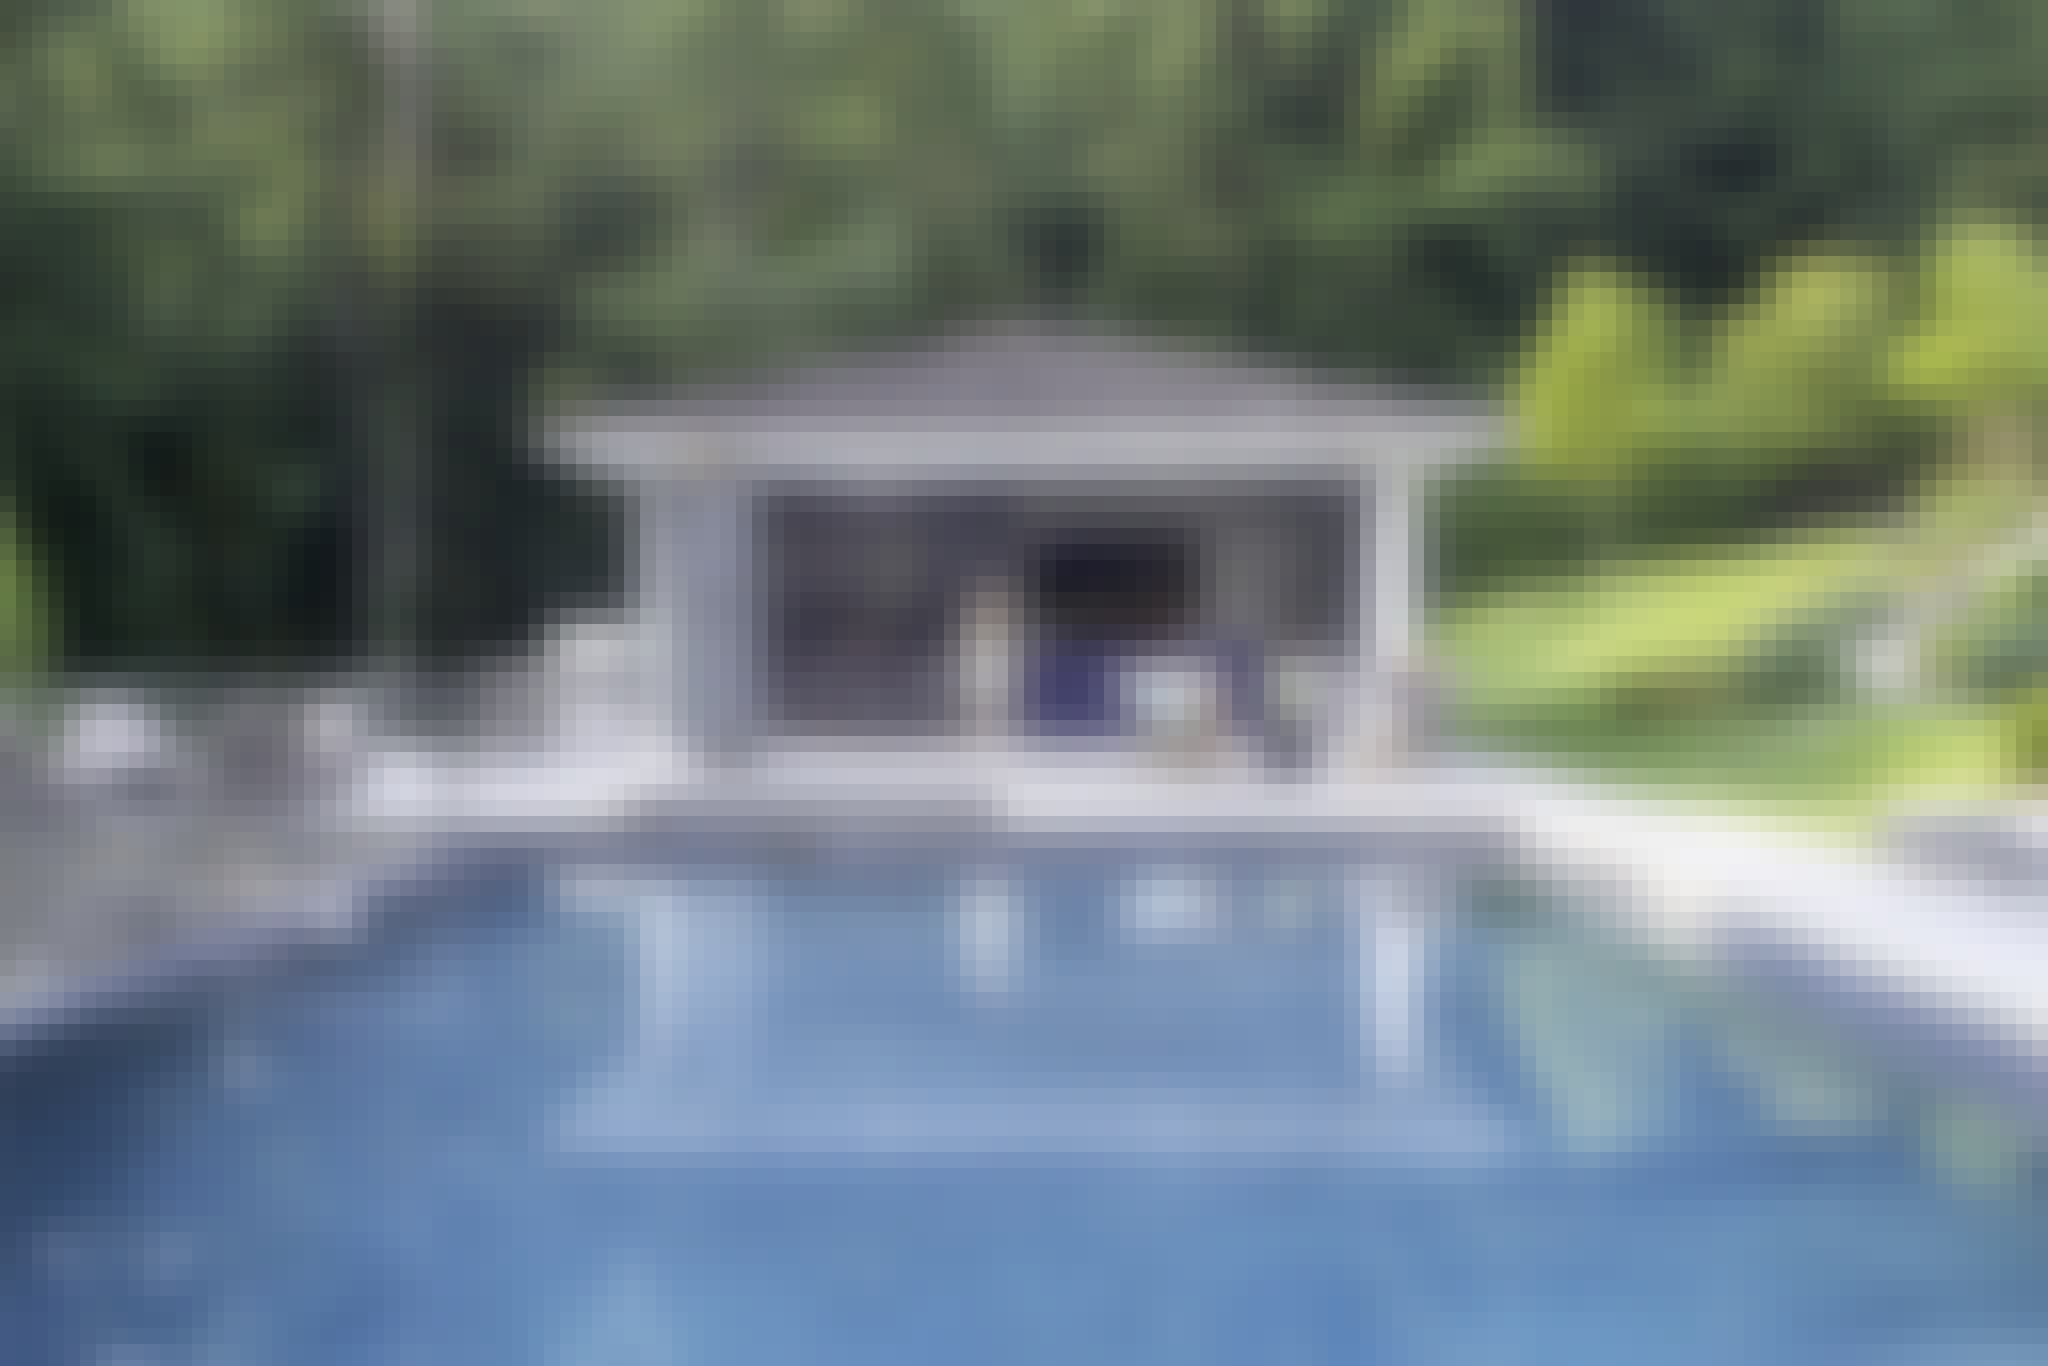 NanaWall folding glass wall systems in pool house design